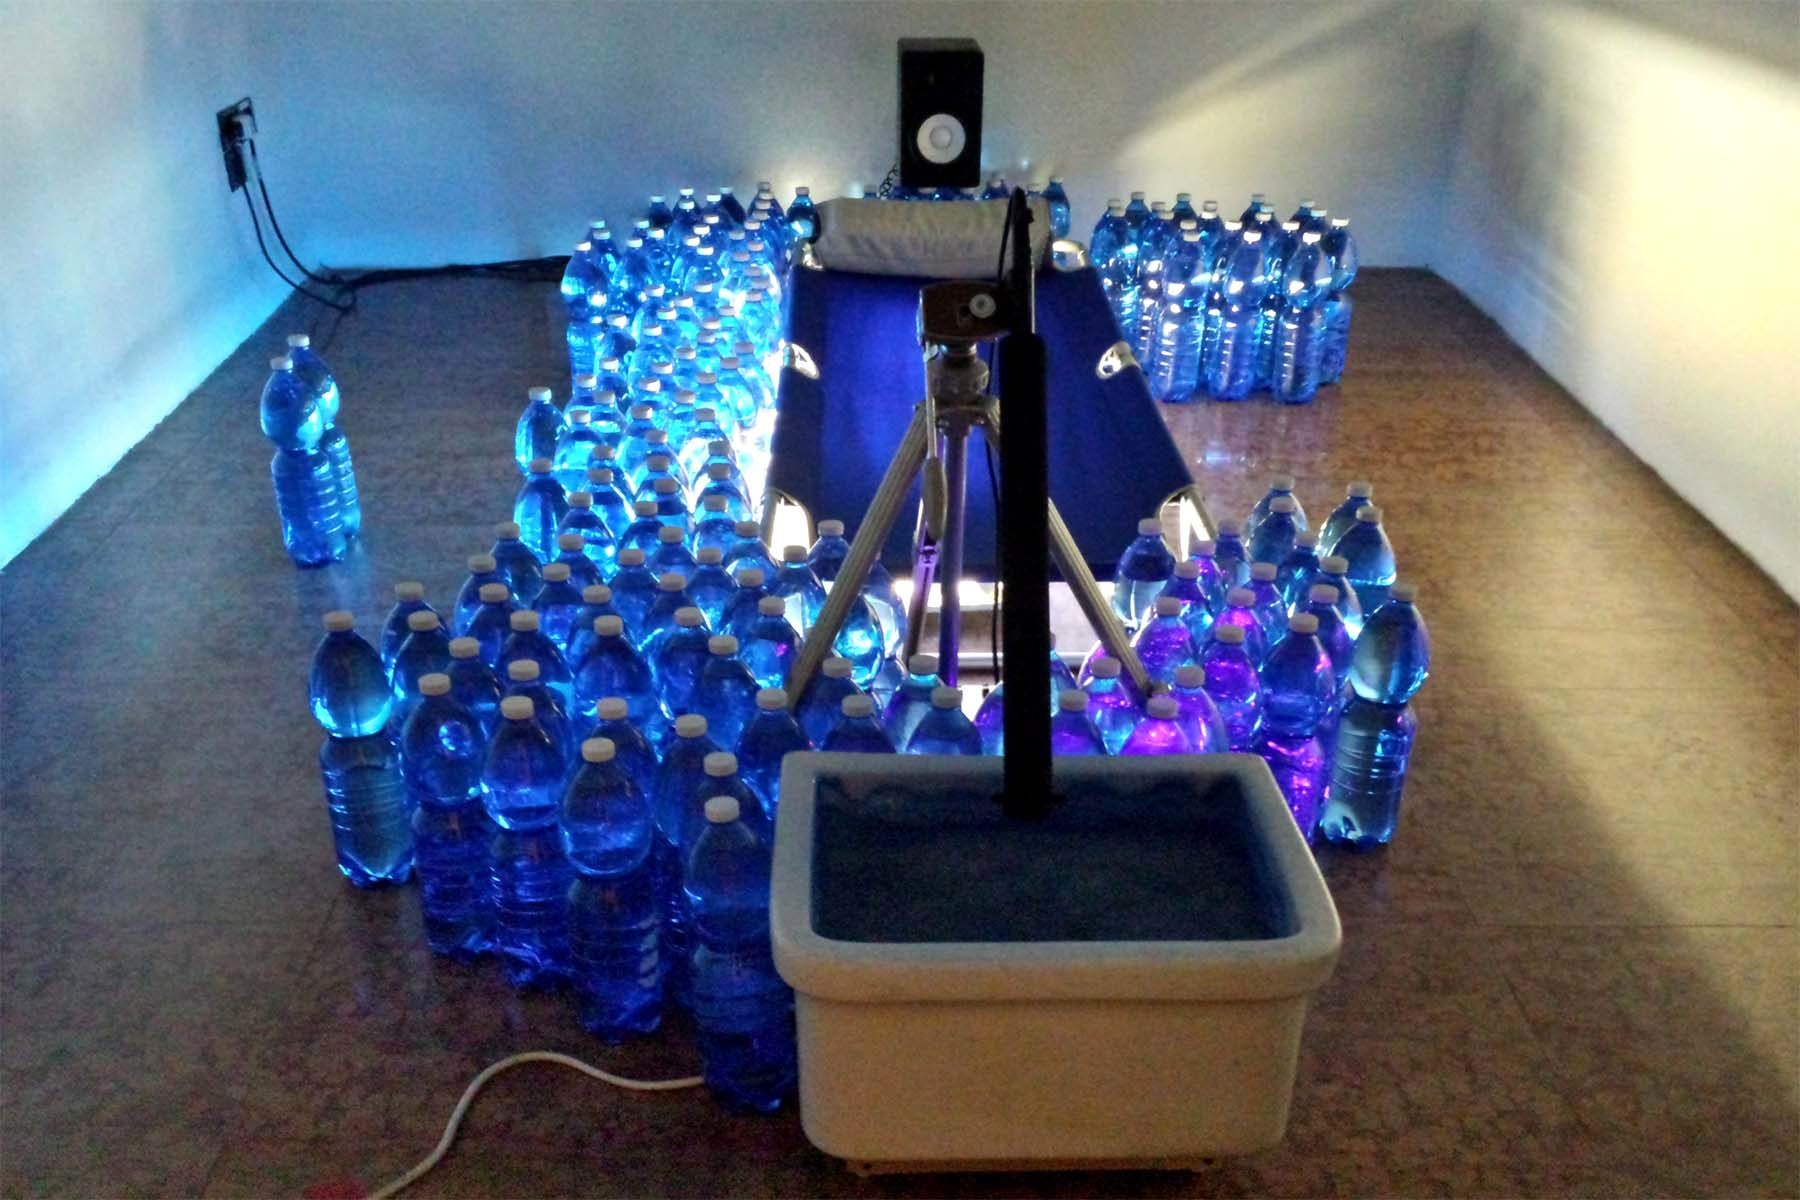 Dario Lazzaretto, Spa – sonic portable aid, 2016, mixed media, audio system, site specific installation